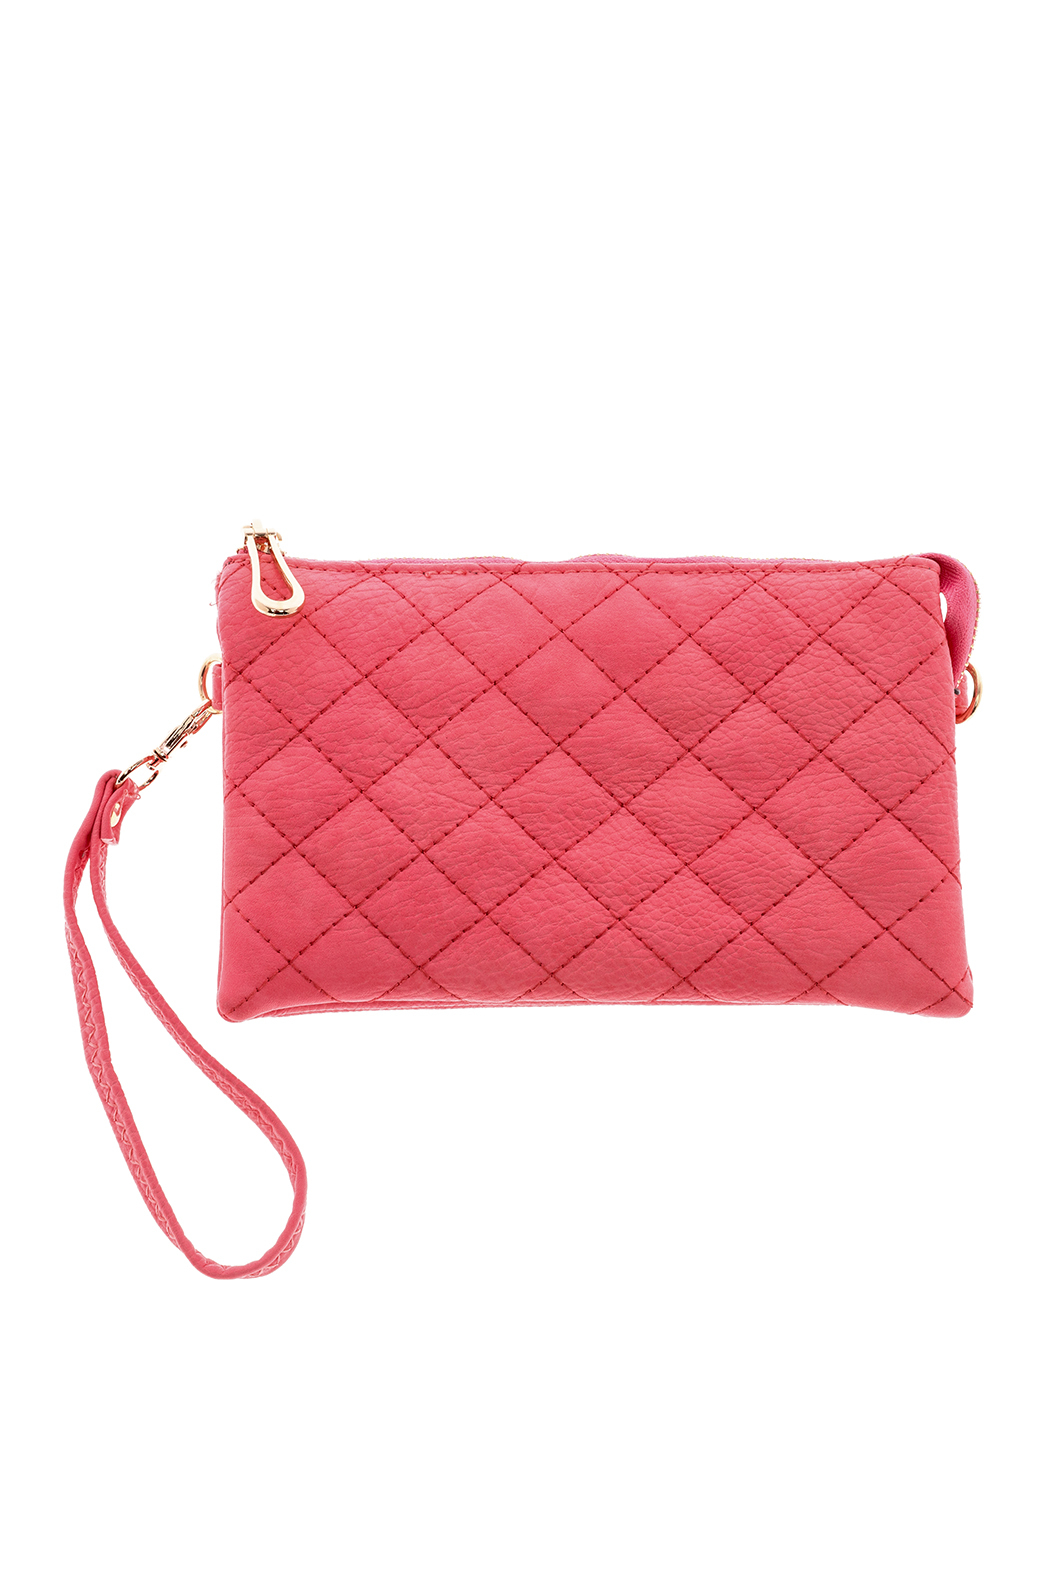 Empire Handbags  Quilted Pink Crossbody - Main Image